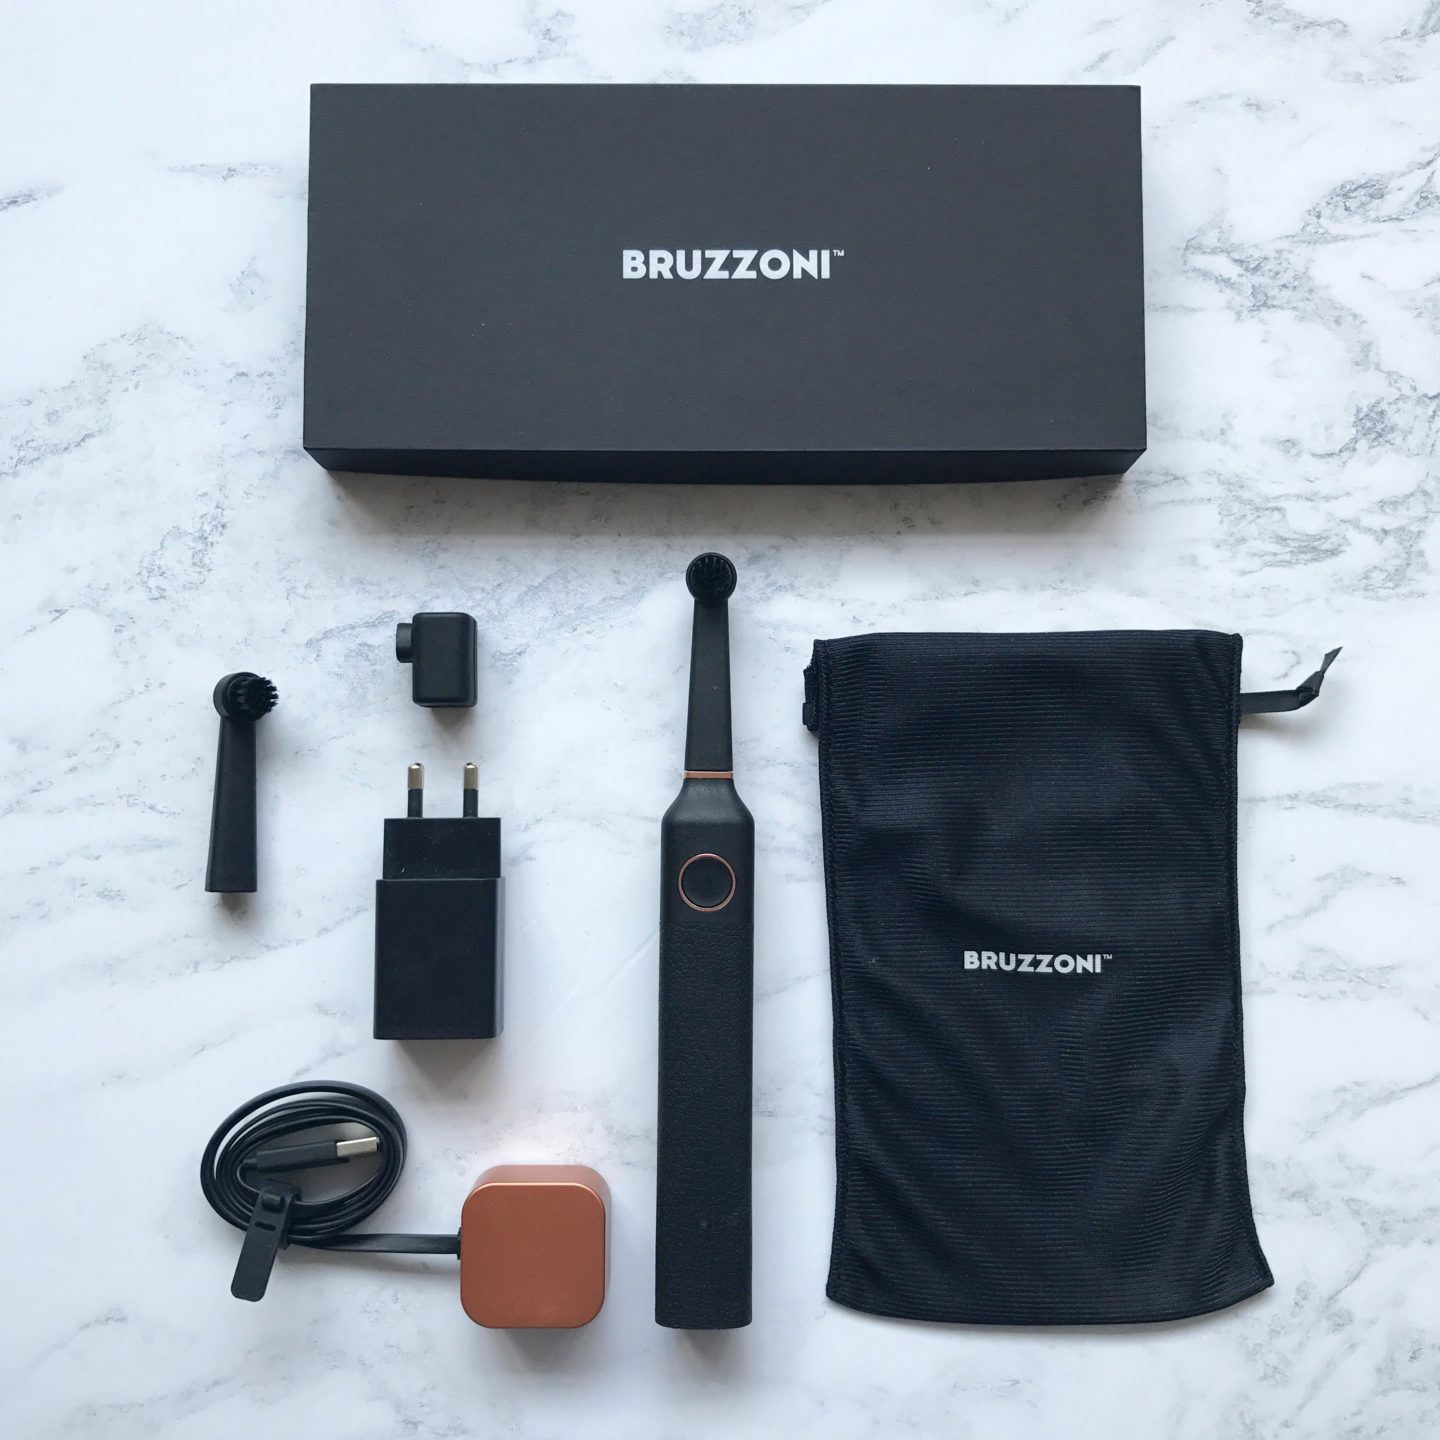 Bruzzoni Toothbrush Black Rose Gold